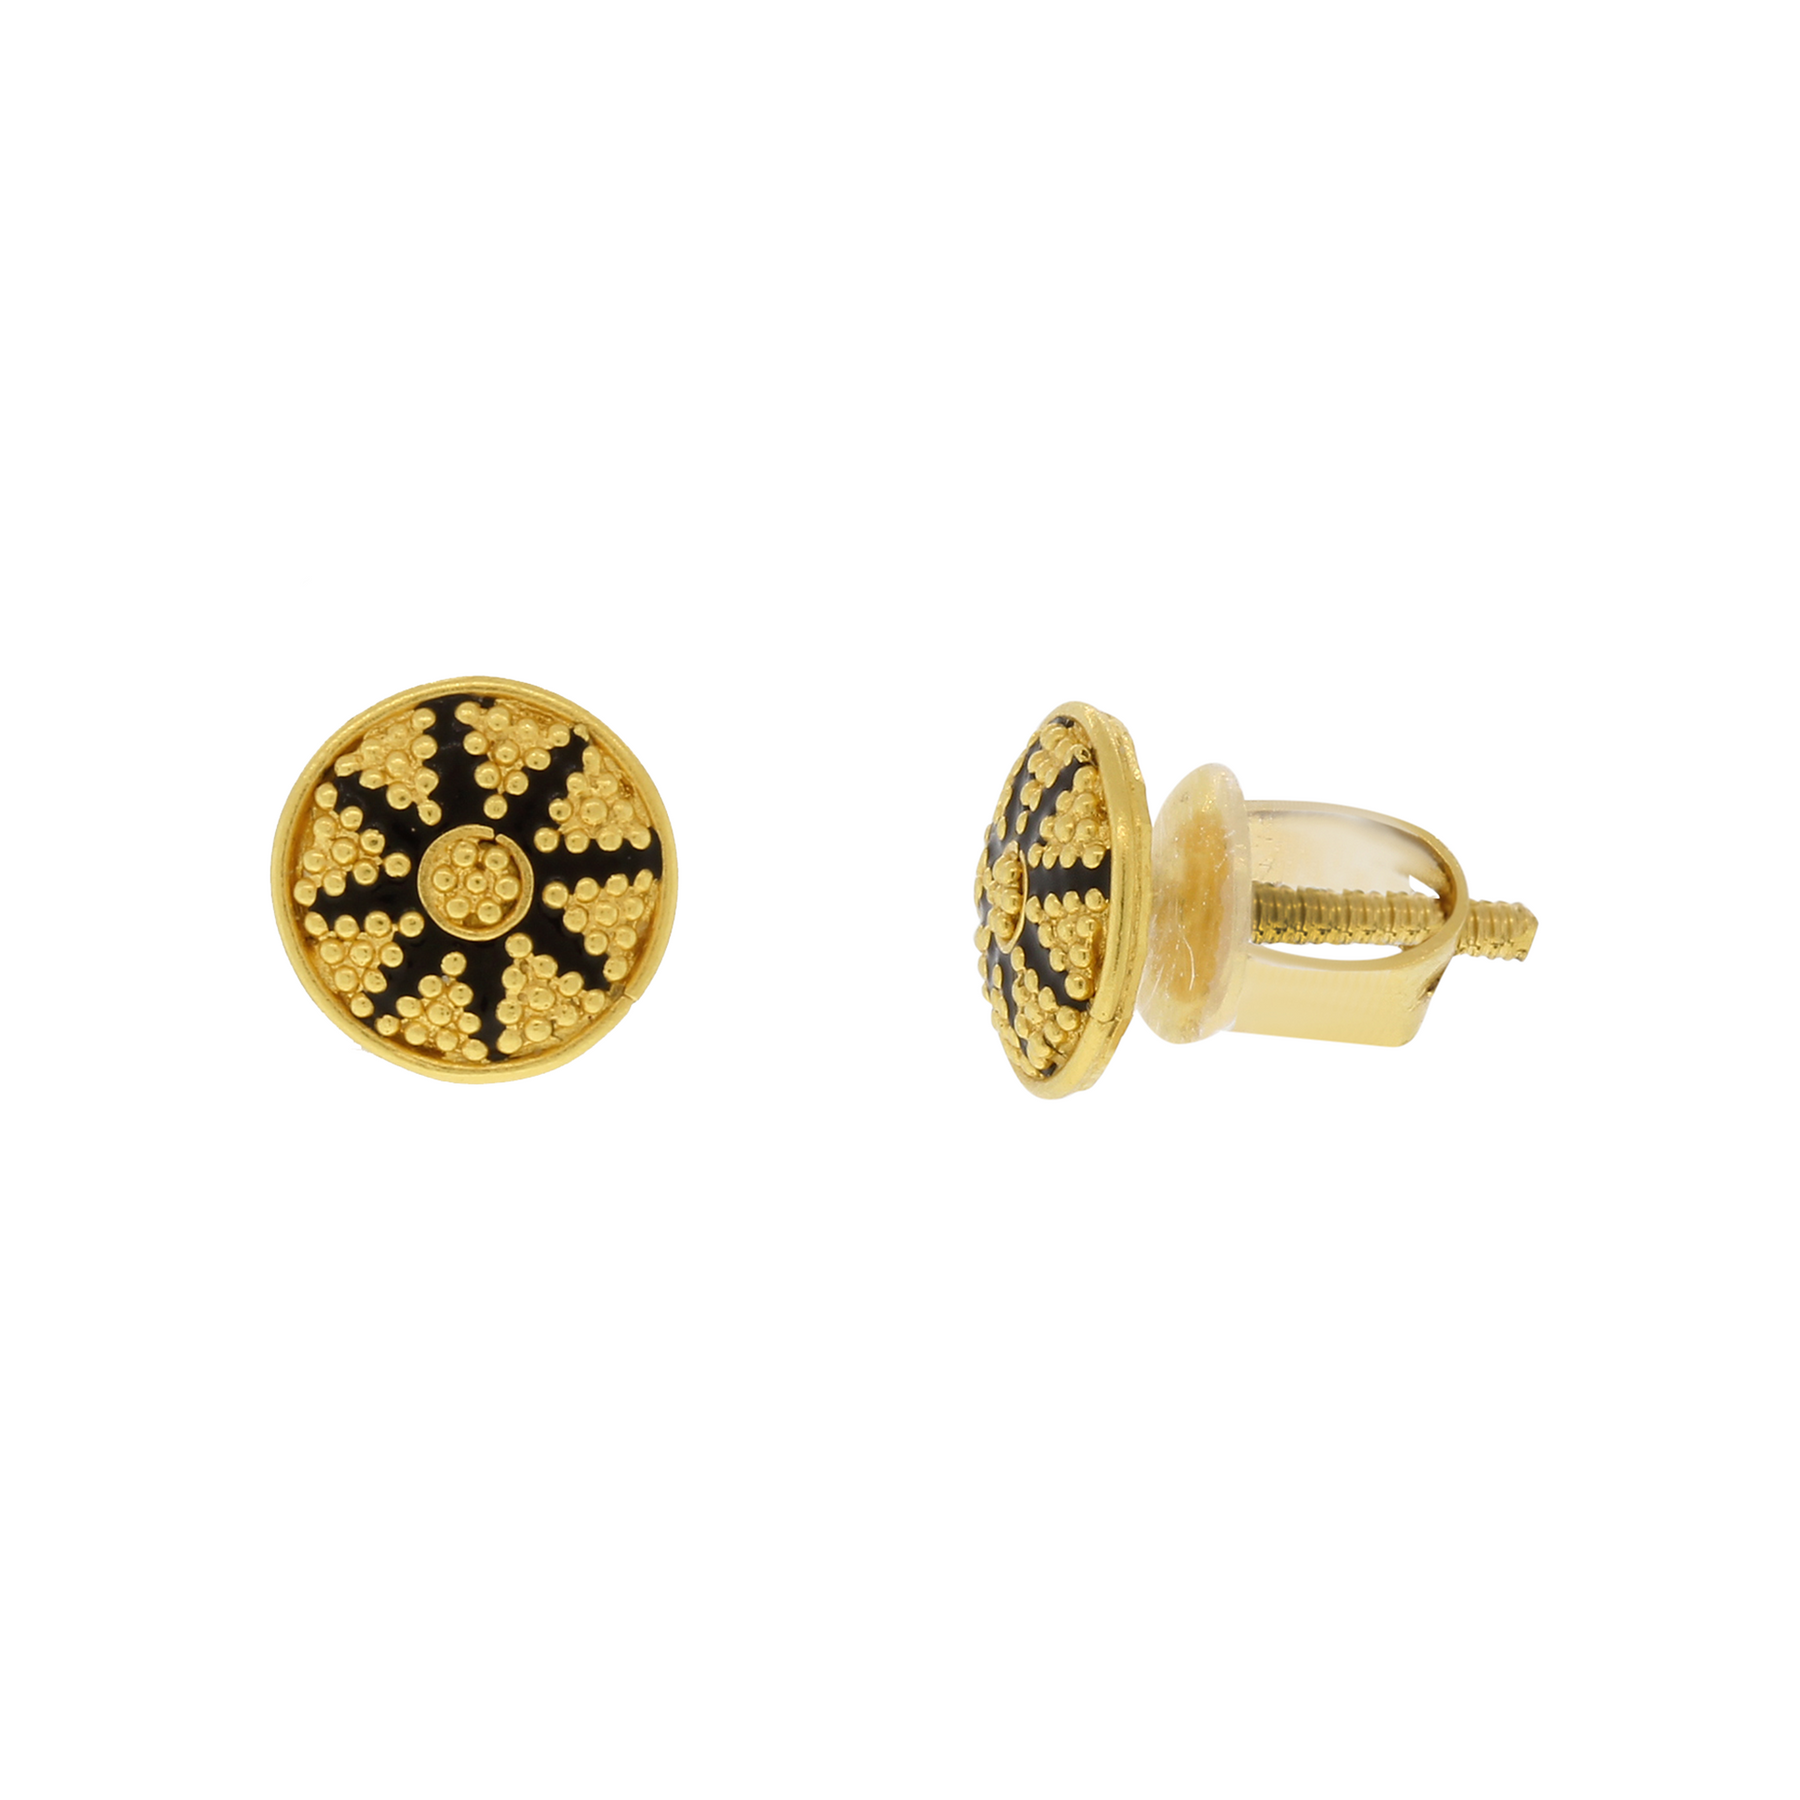 gold stud with earrings diamond kite in black